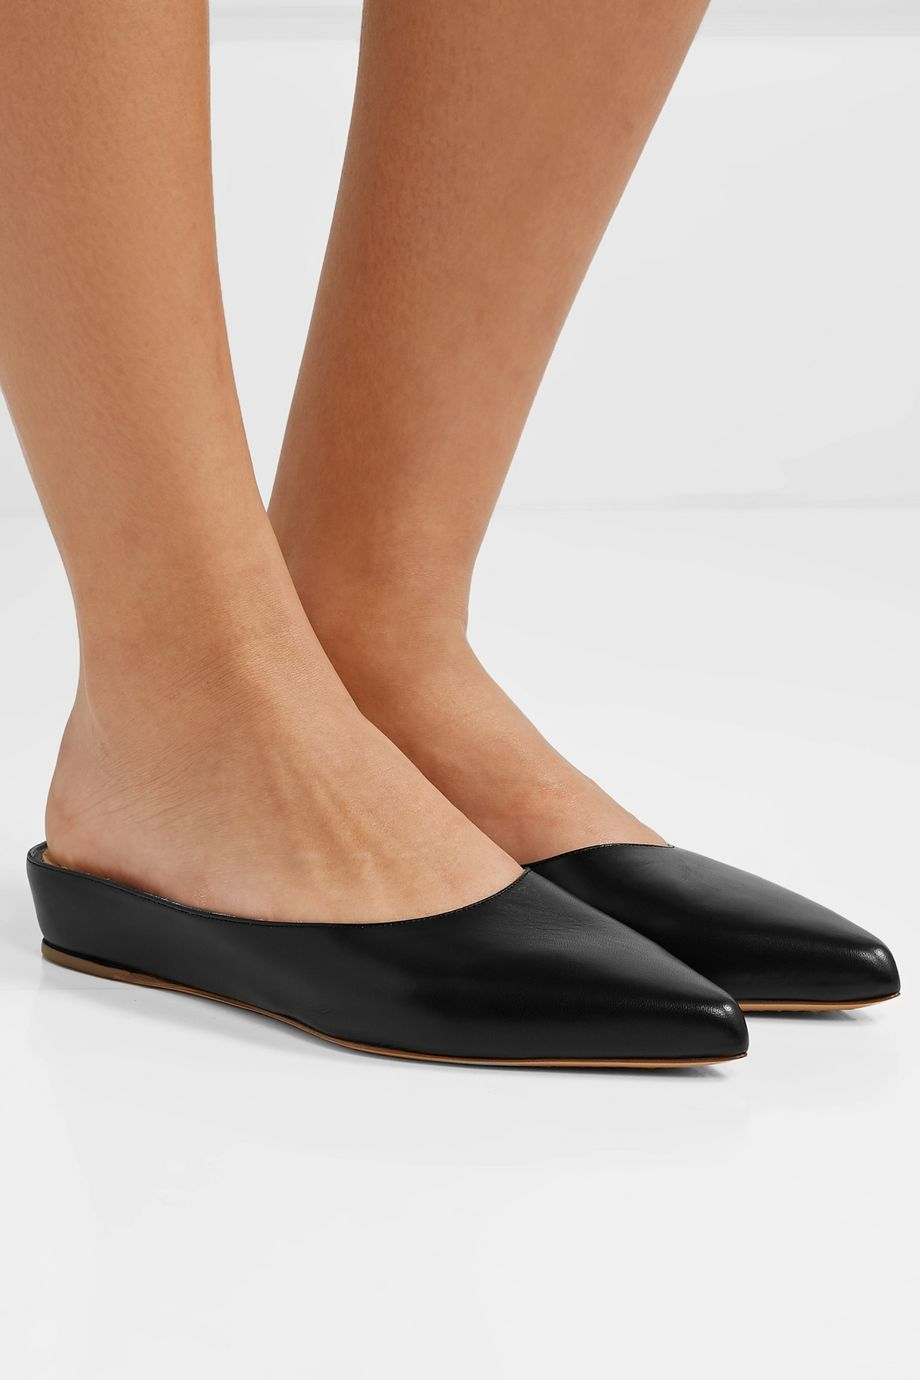 Gabriela Hearst Martin leather slippers